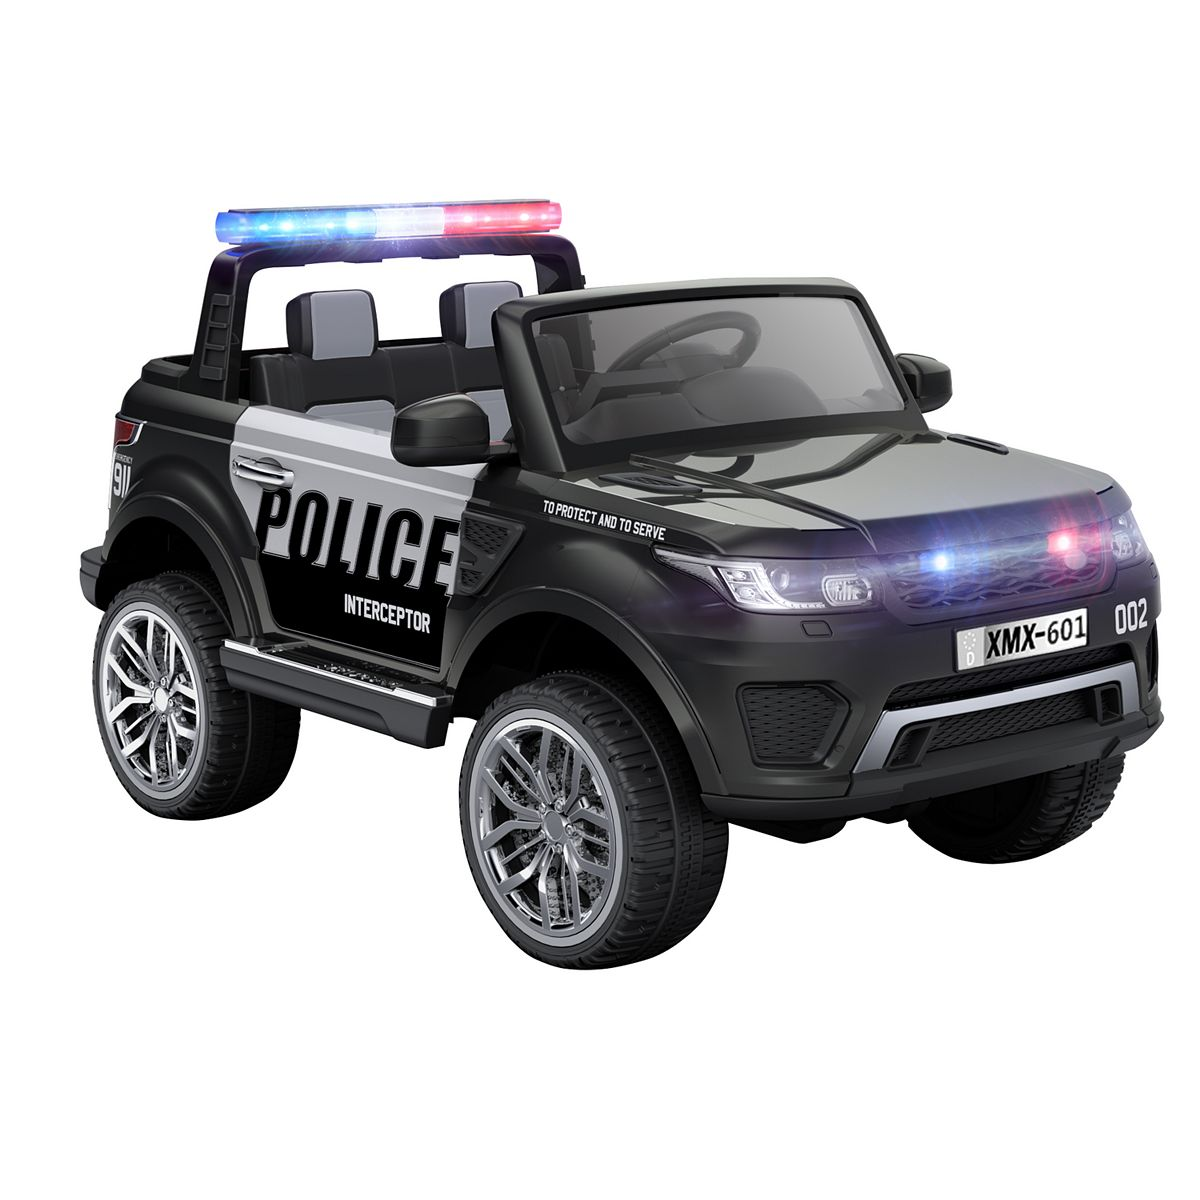 Blazin Wheels 12V Ride-On Police Vehicle + $85 Kohls Rewards